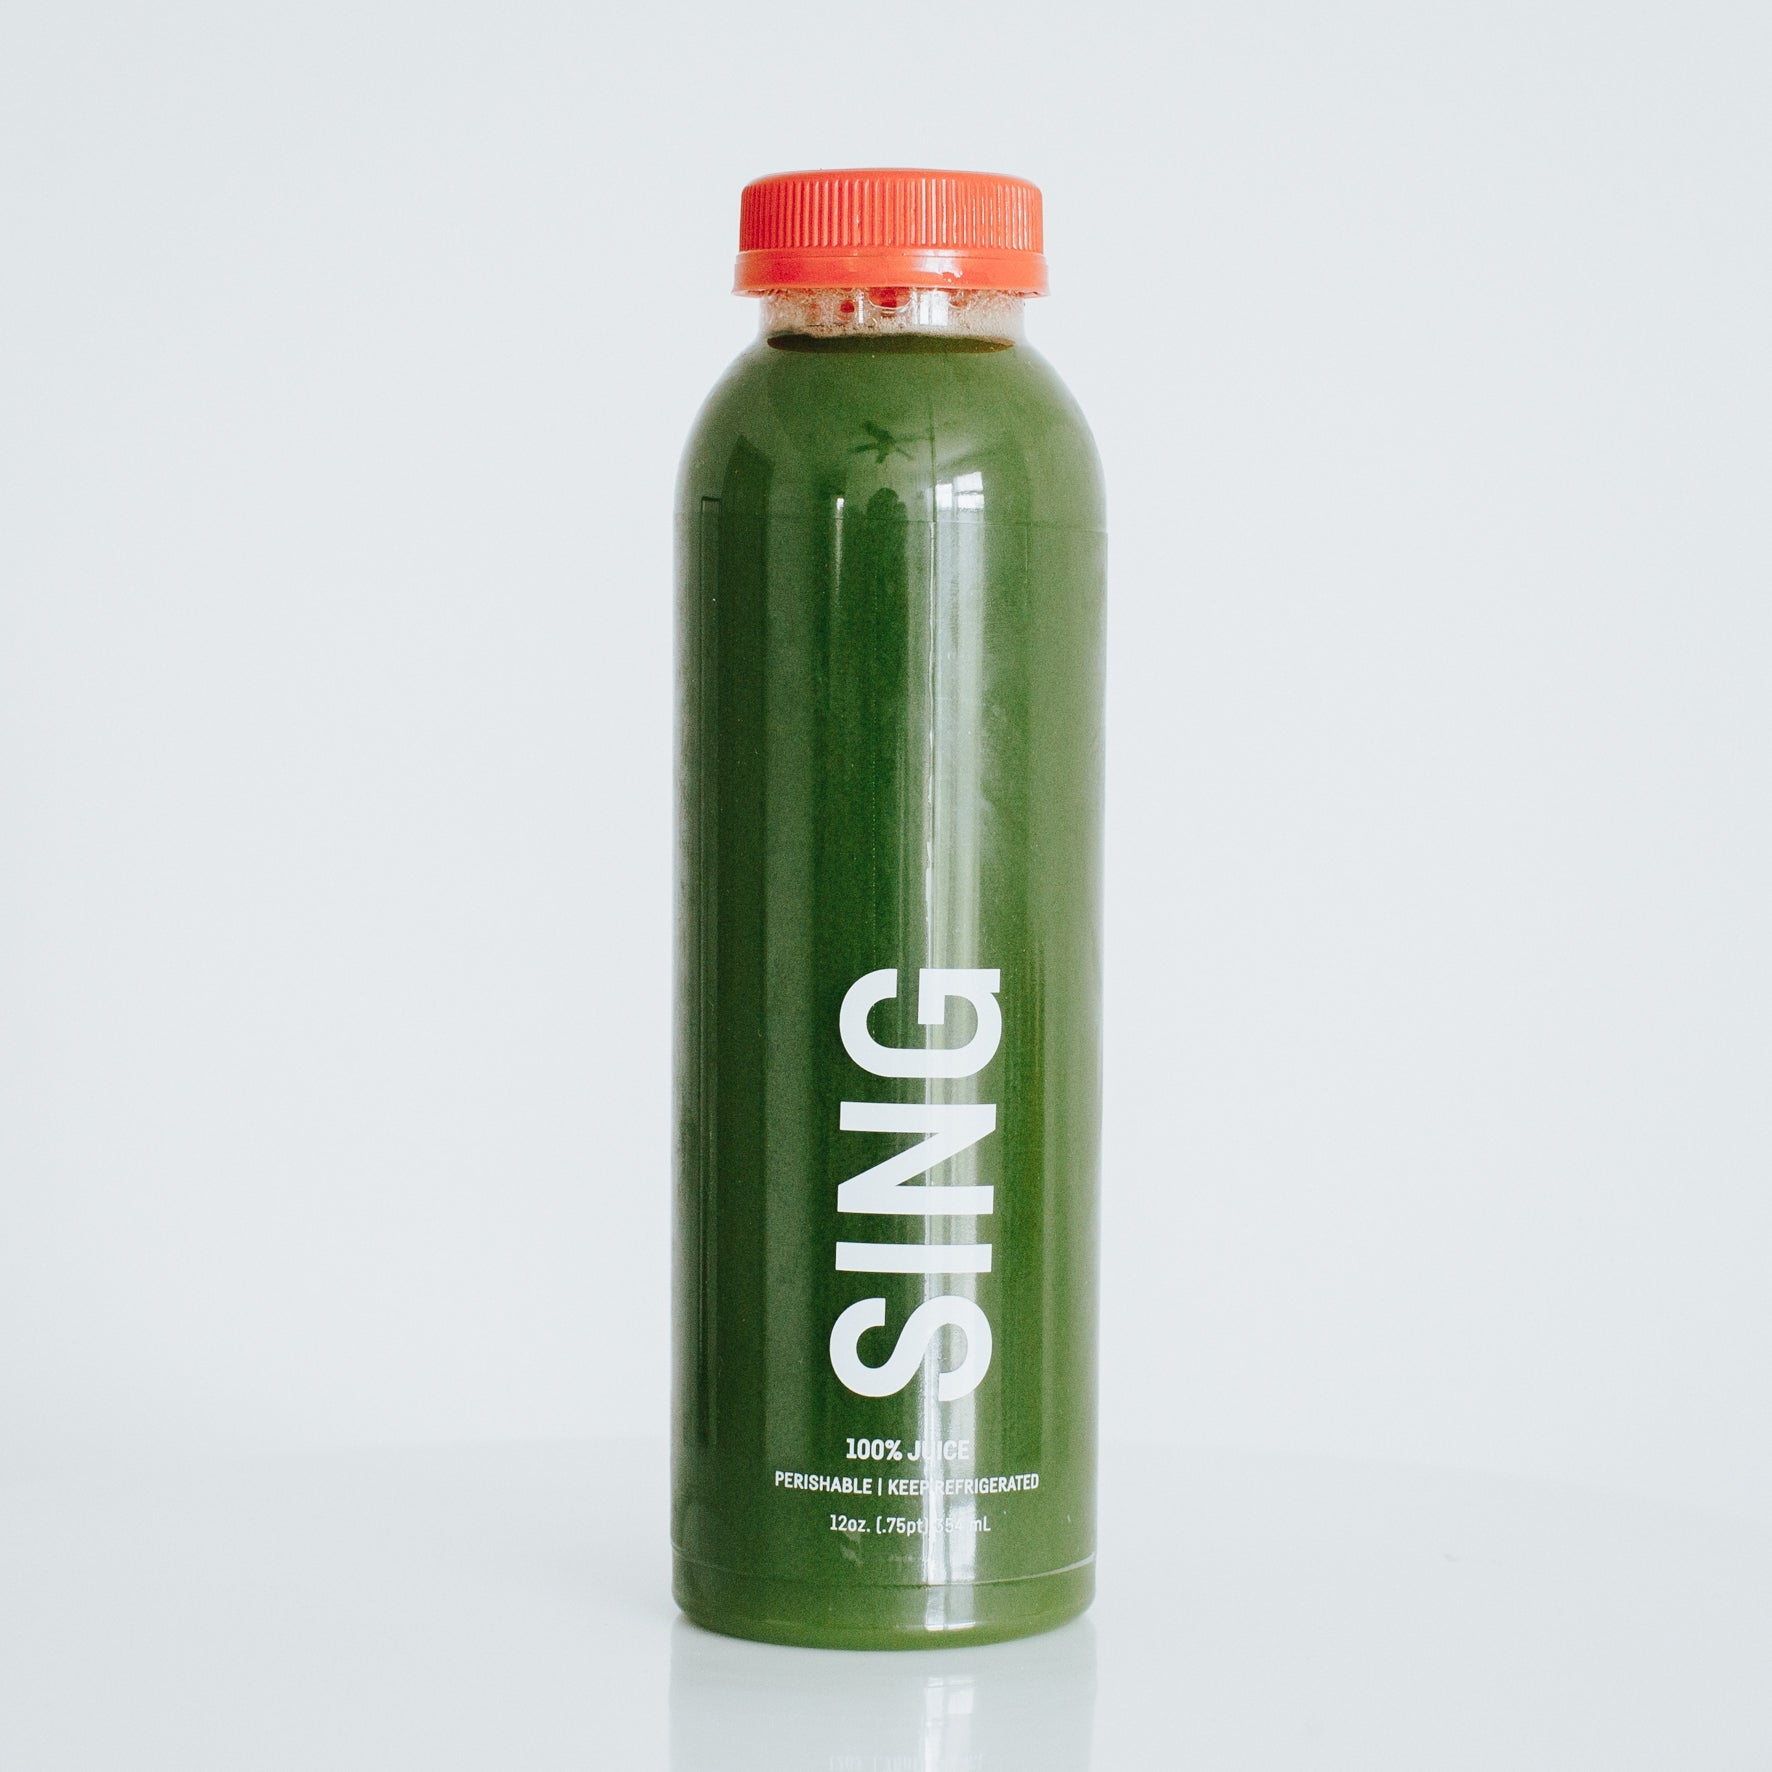 sing. [spinach, kale, green apple, lemon]